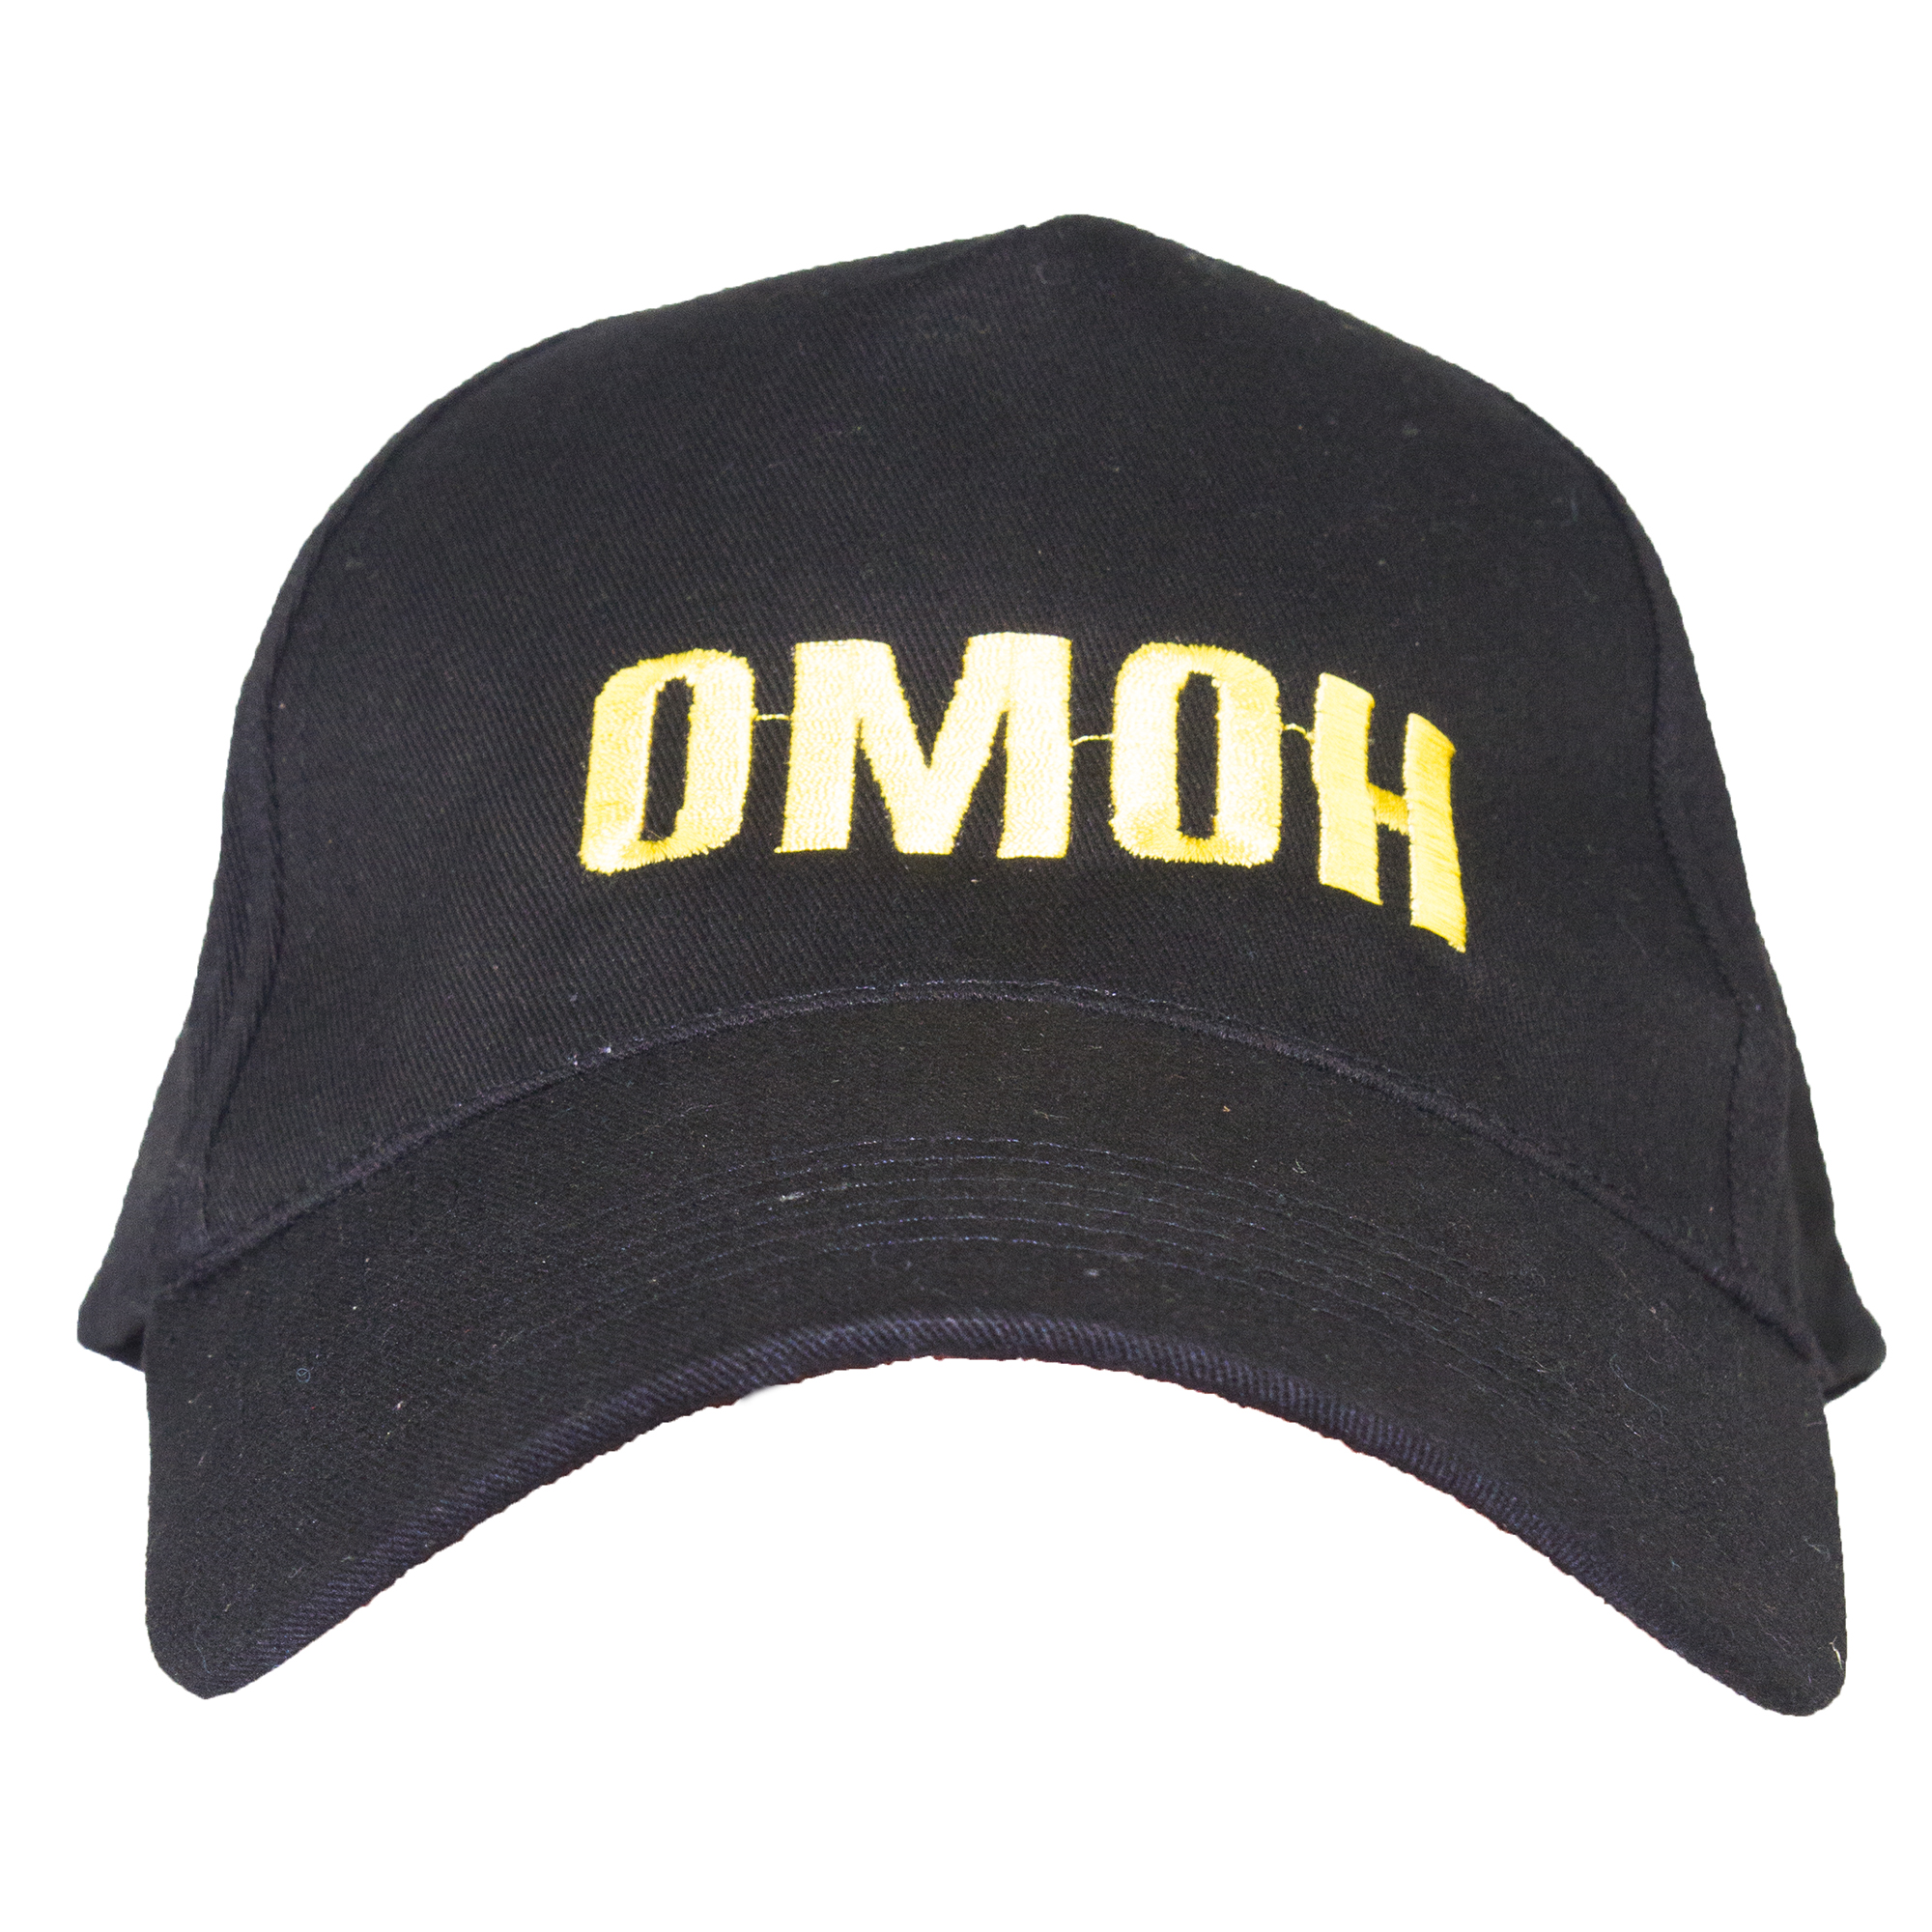 OMON yellow